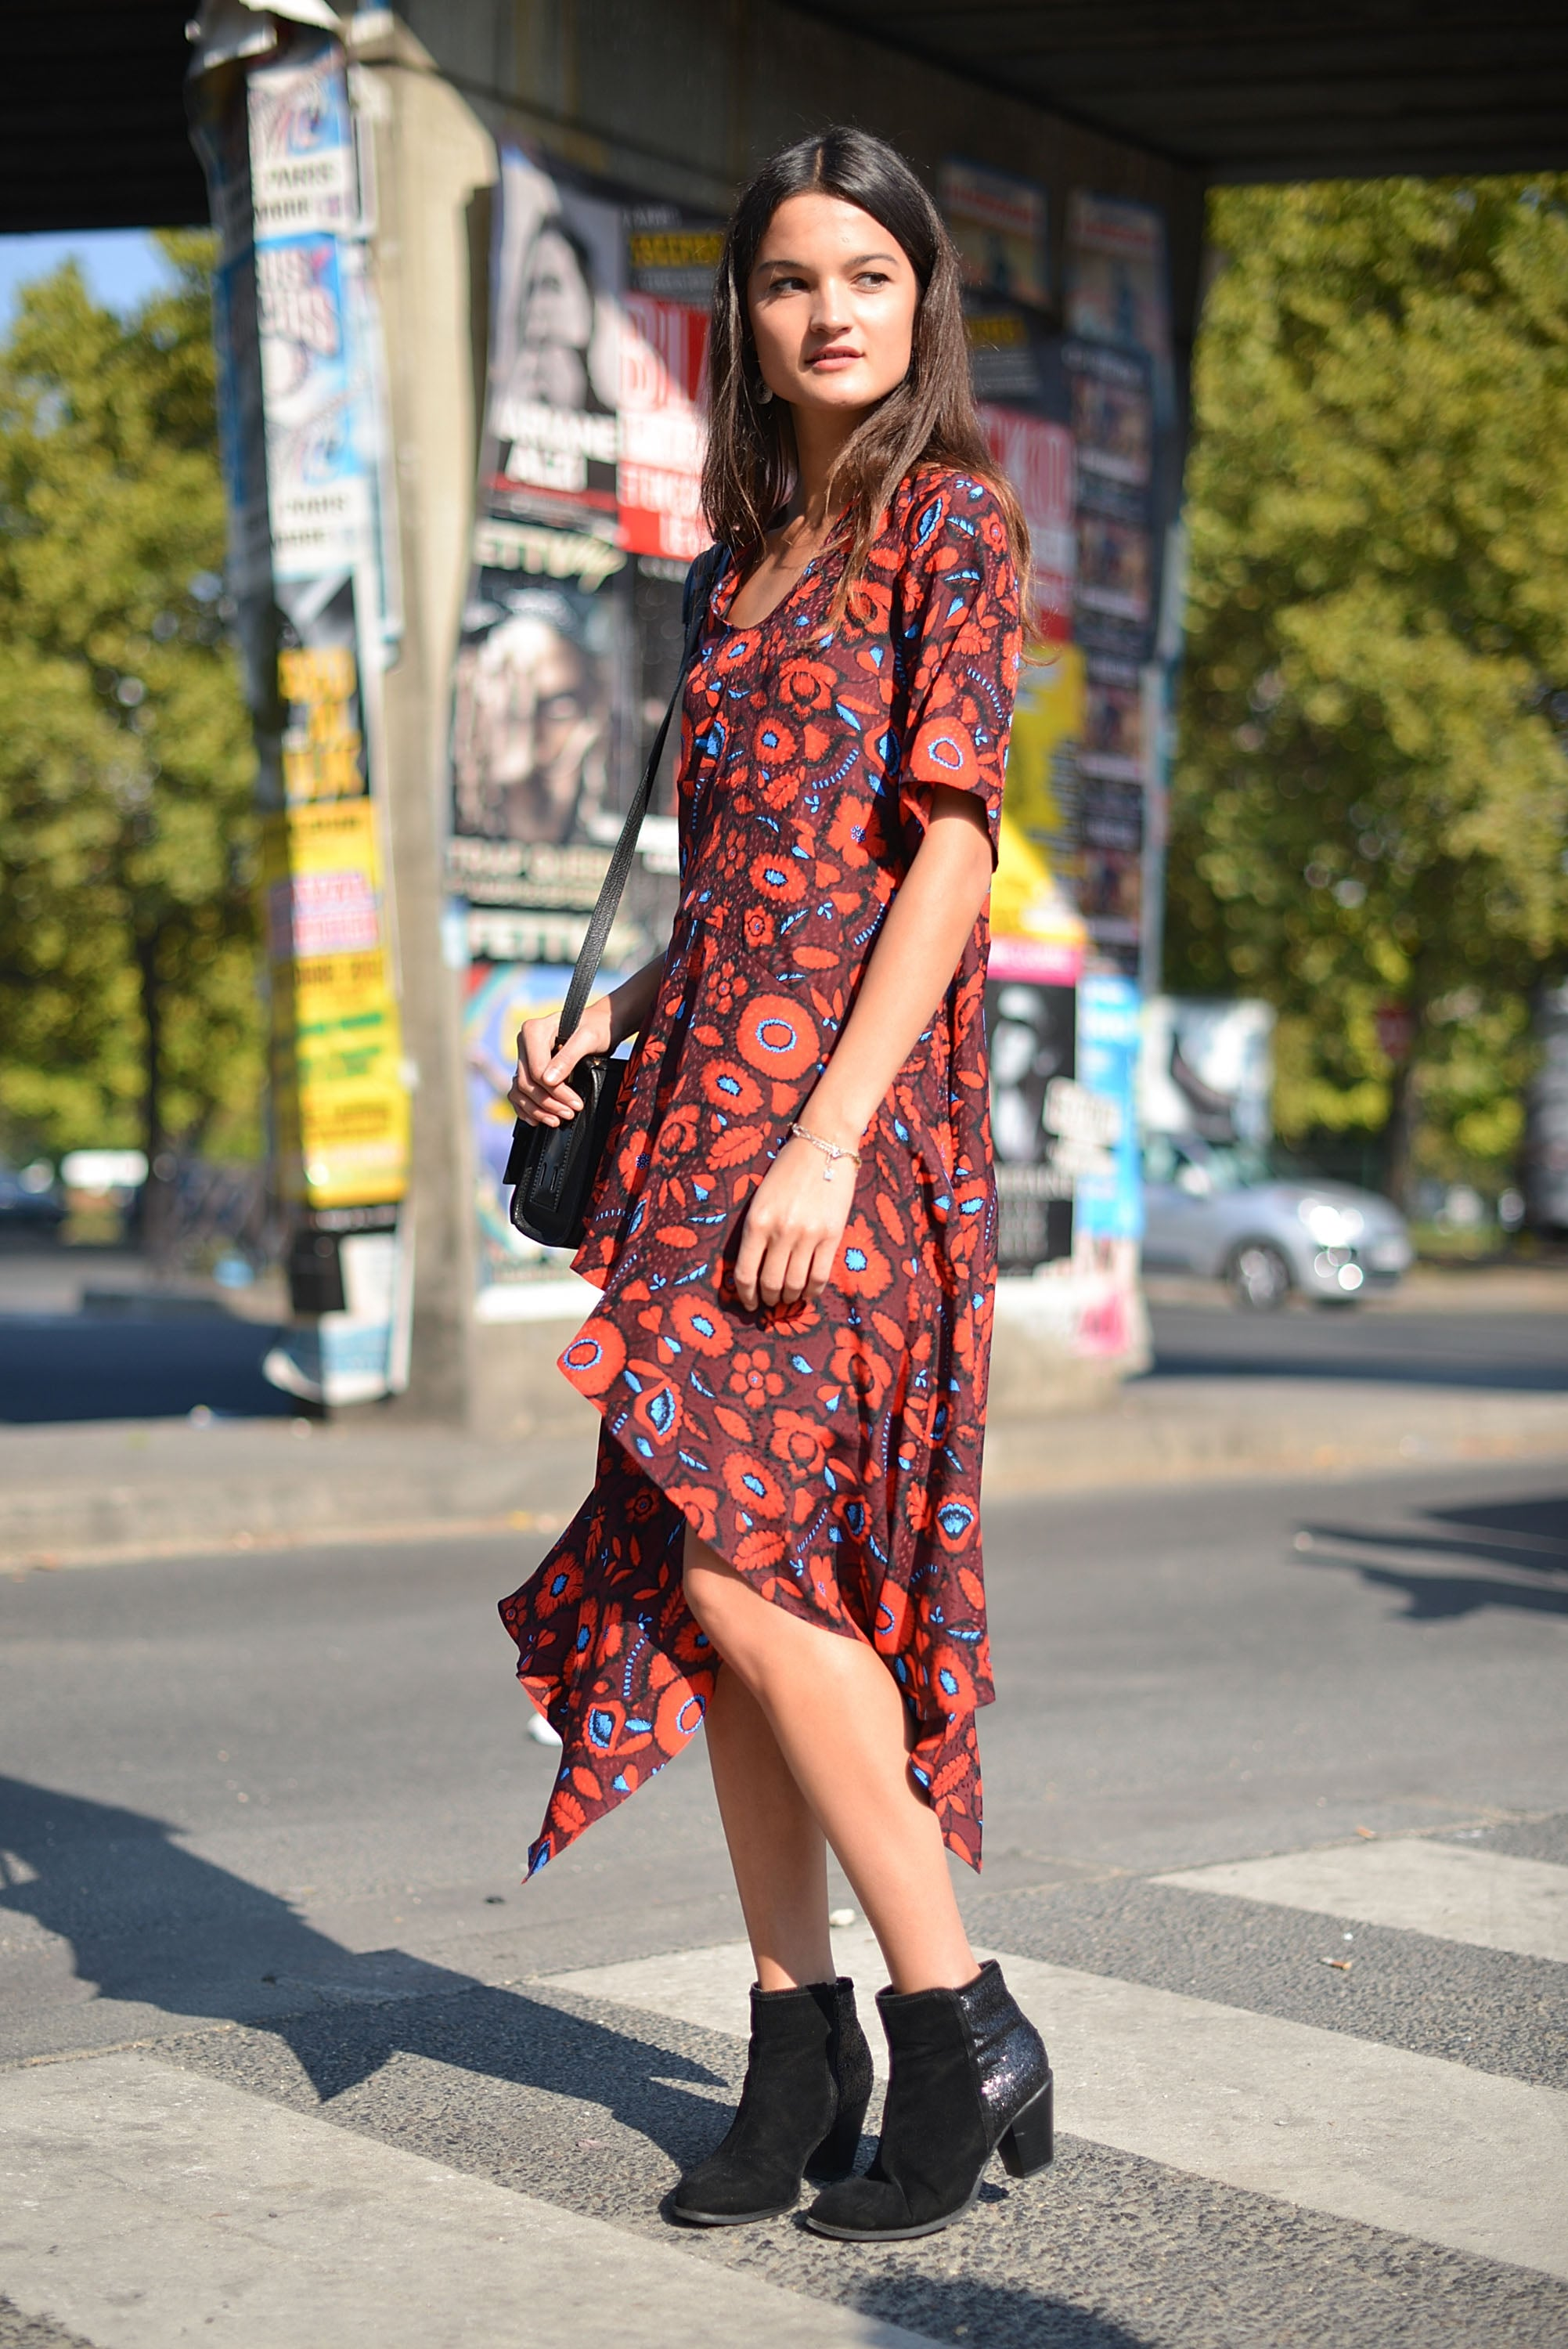 A '90s-inspired floral dress with ankle